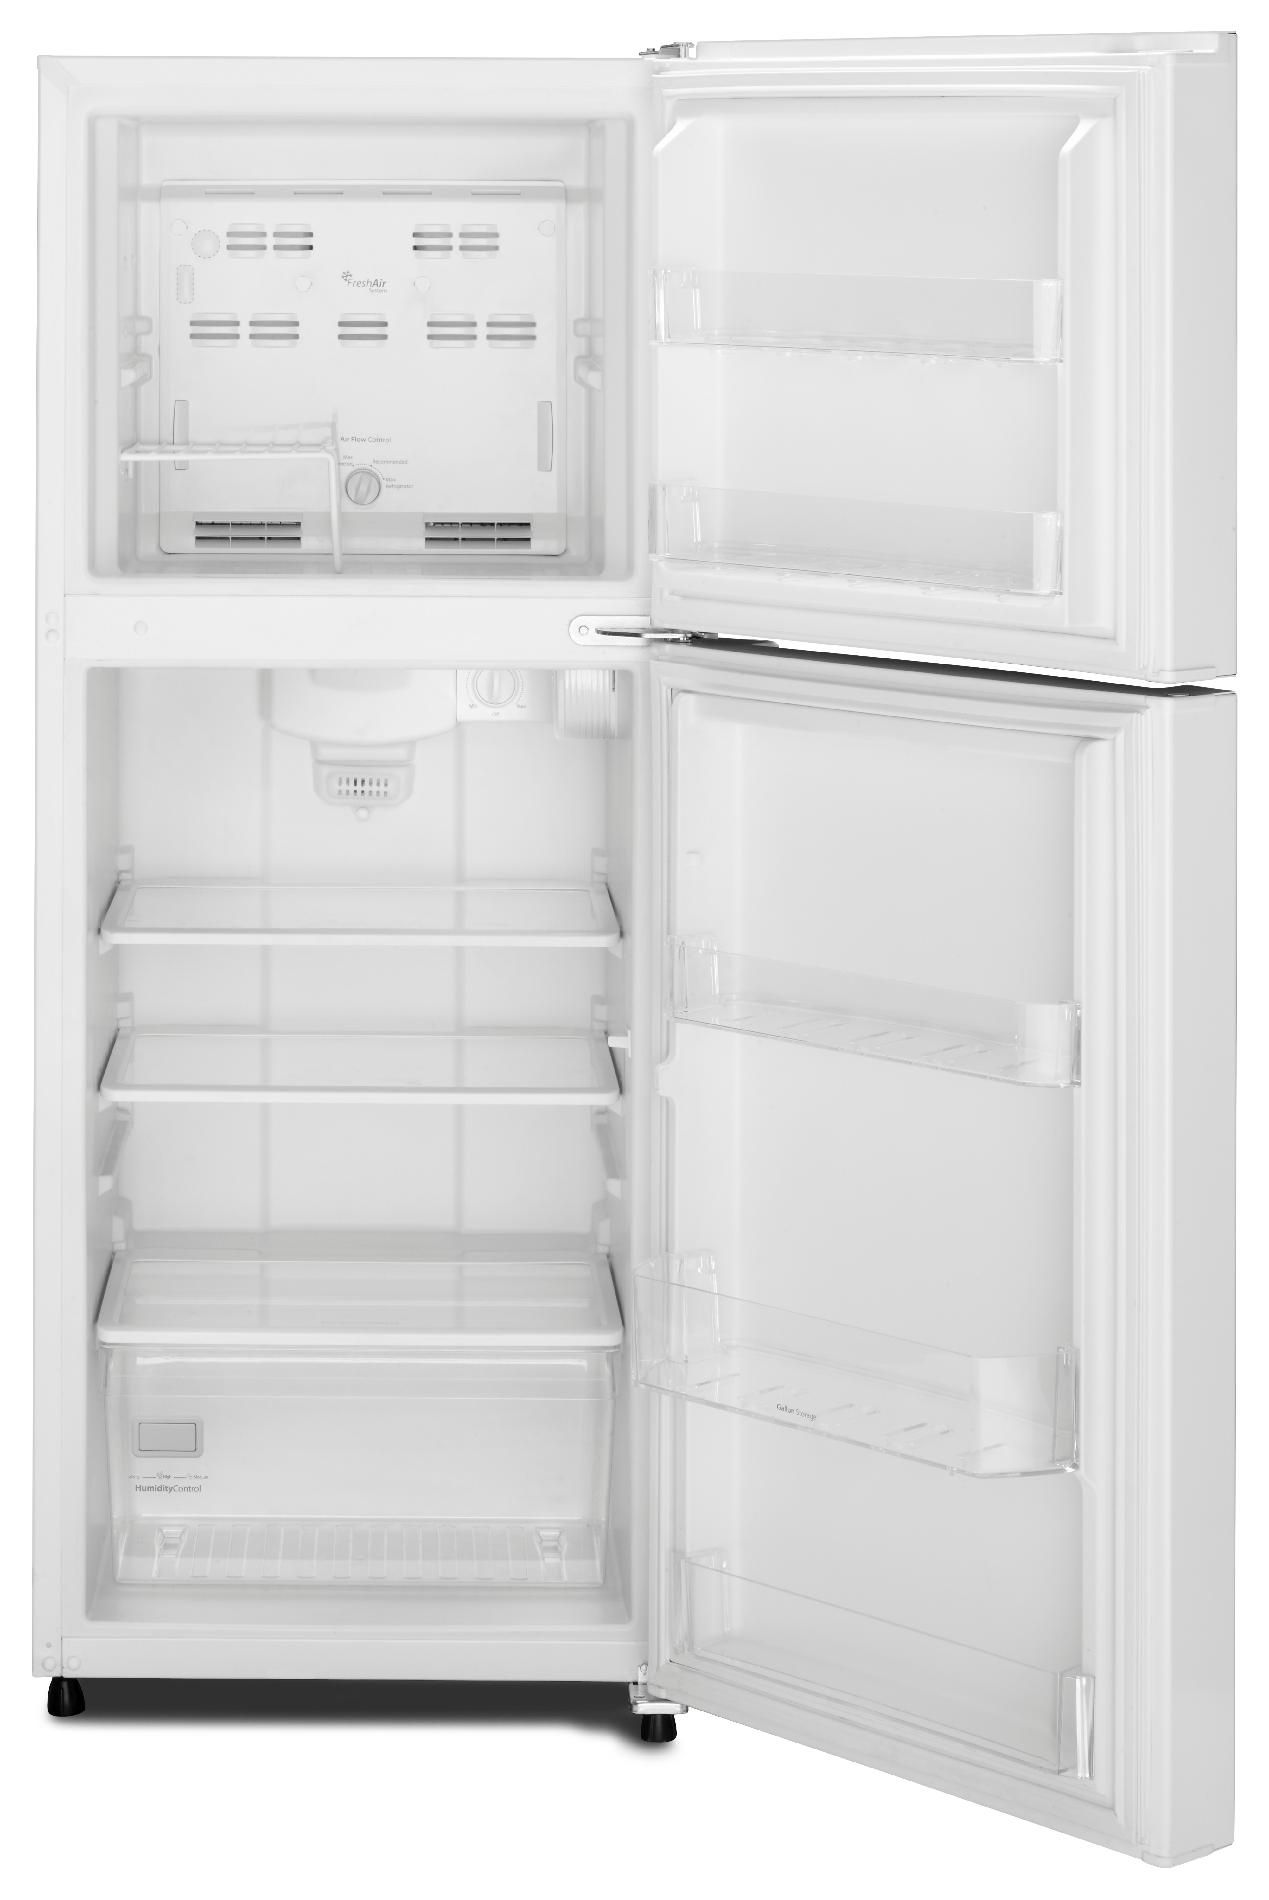 Whirlpool 11 cu. ft. Top-Freezer Refrigerator w/ Gallon Door Bin - White